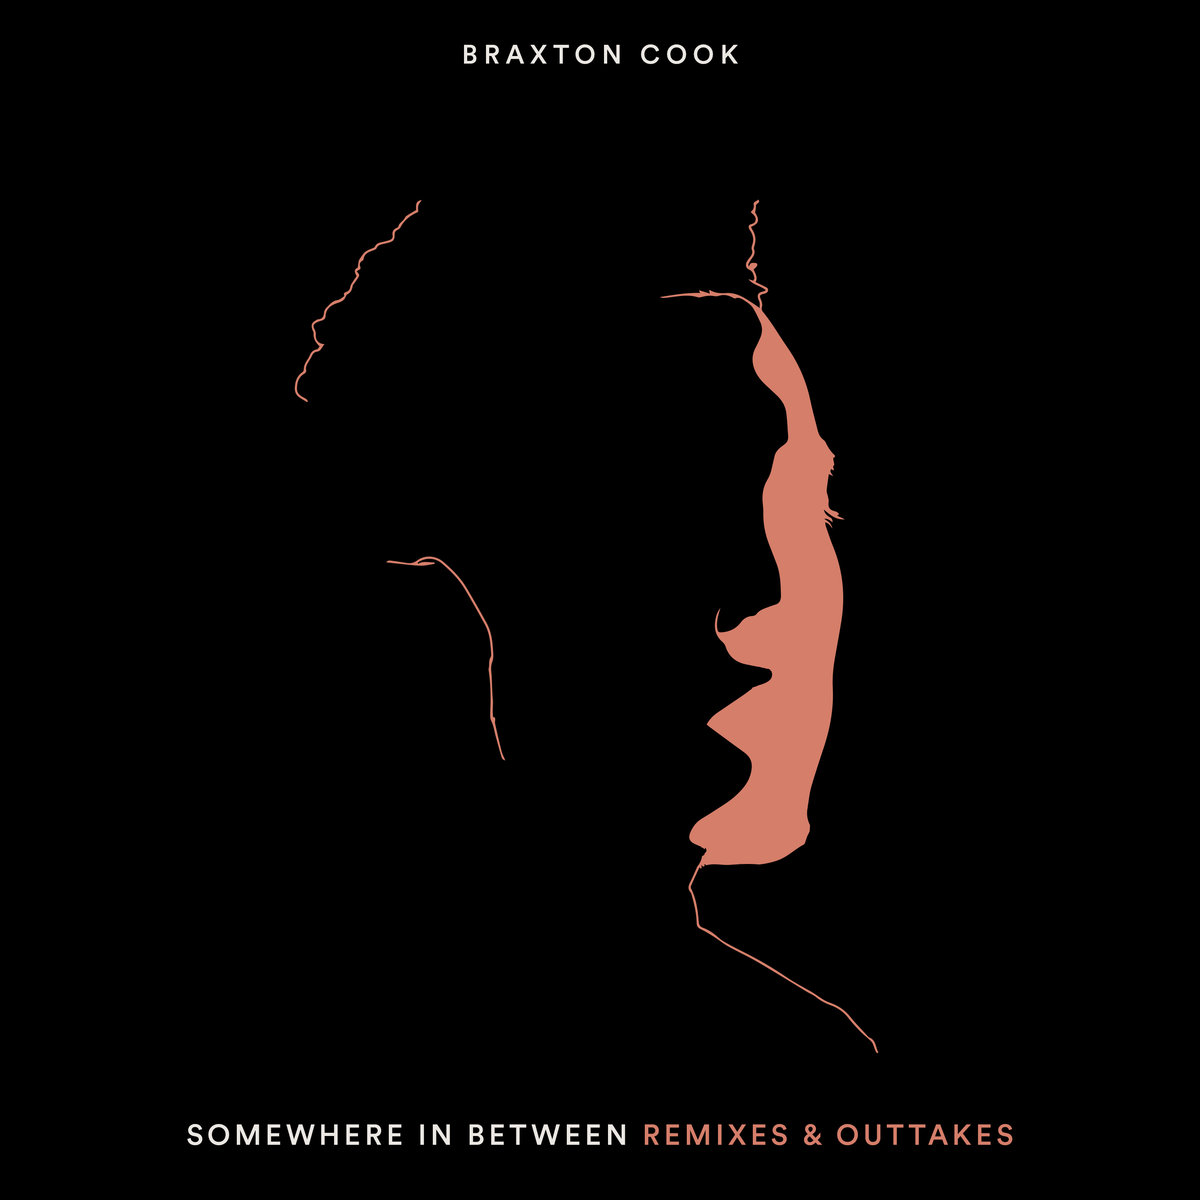 """Somewhere in Between: Remixes & Outtakes"" was released June of 2018 on Fresh Selects. It features remixes by Quickly Quickly, Kiefer, Swarvy, Allmos and a rap feature by Pell."